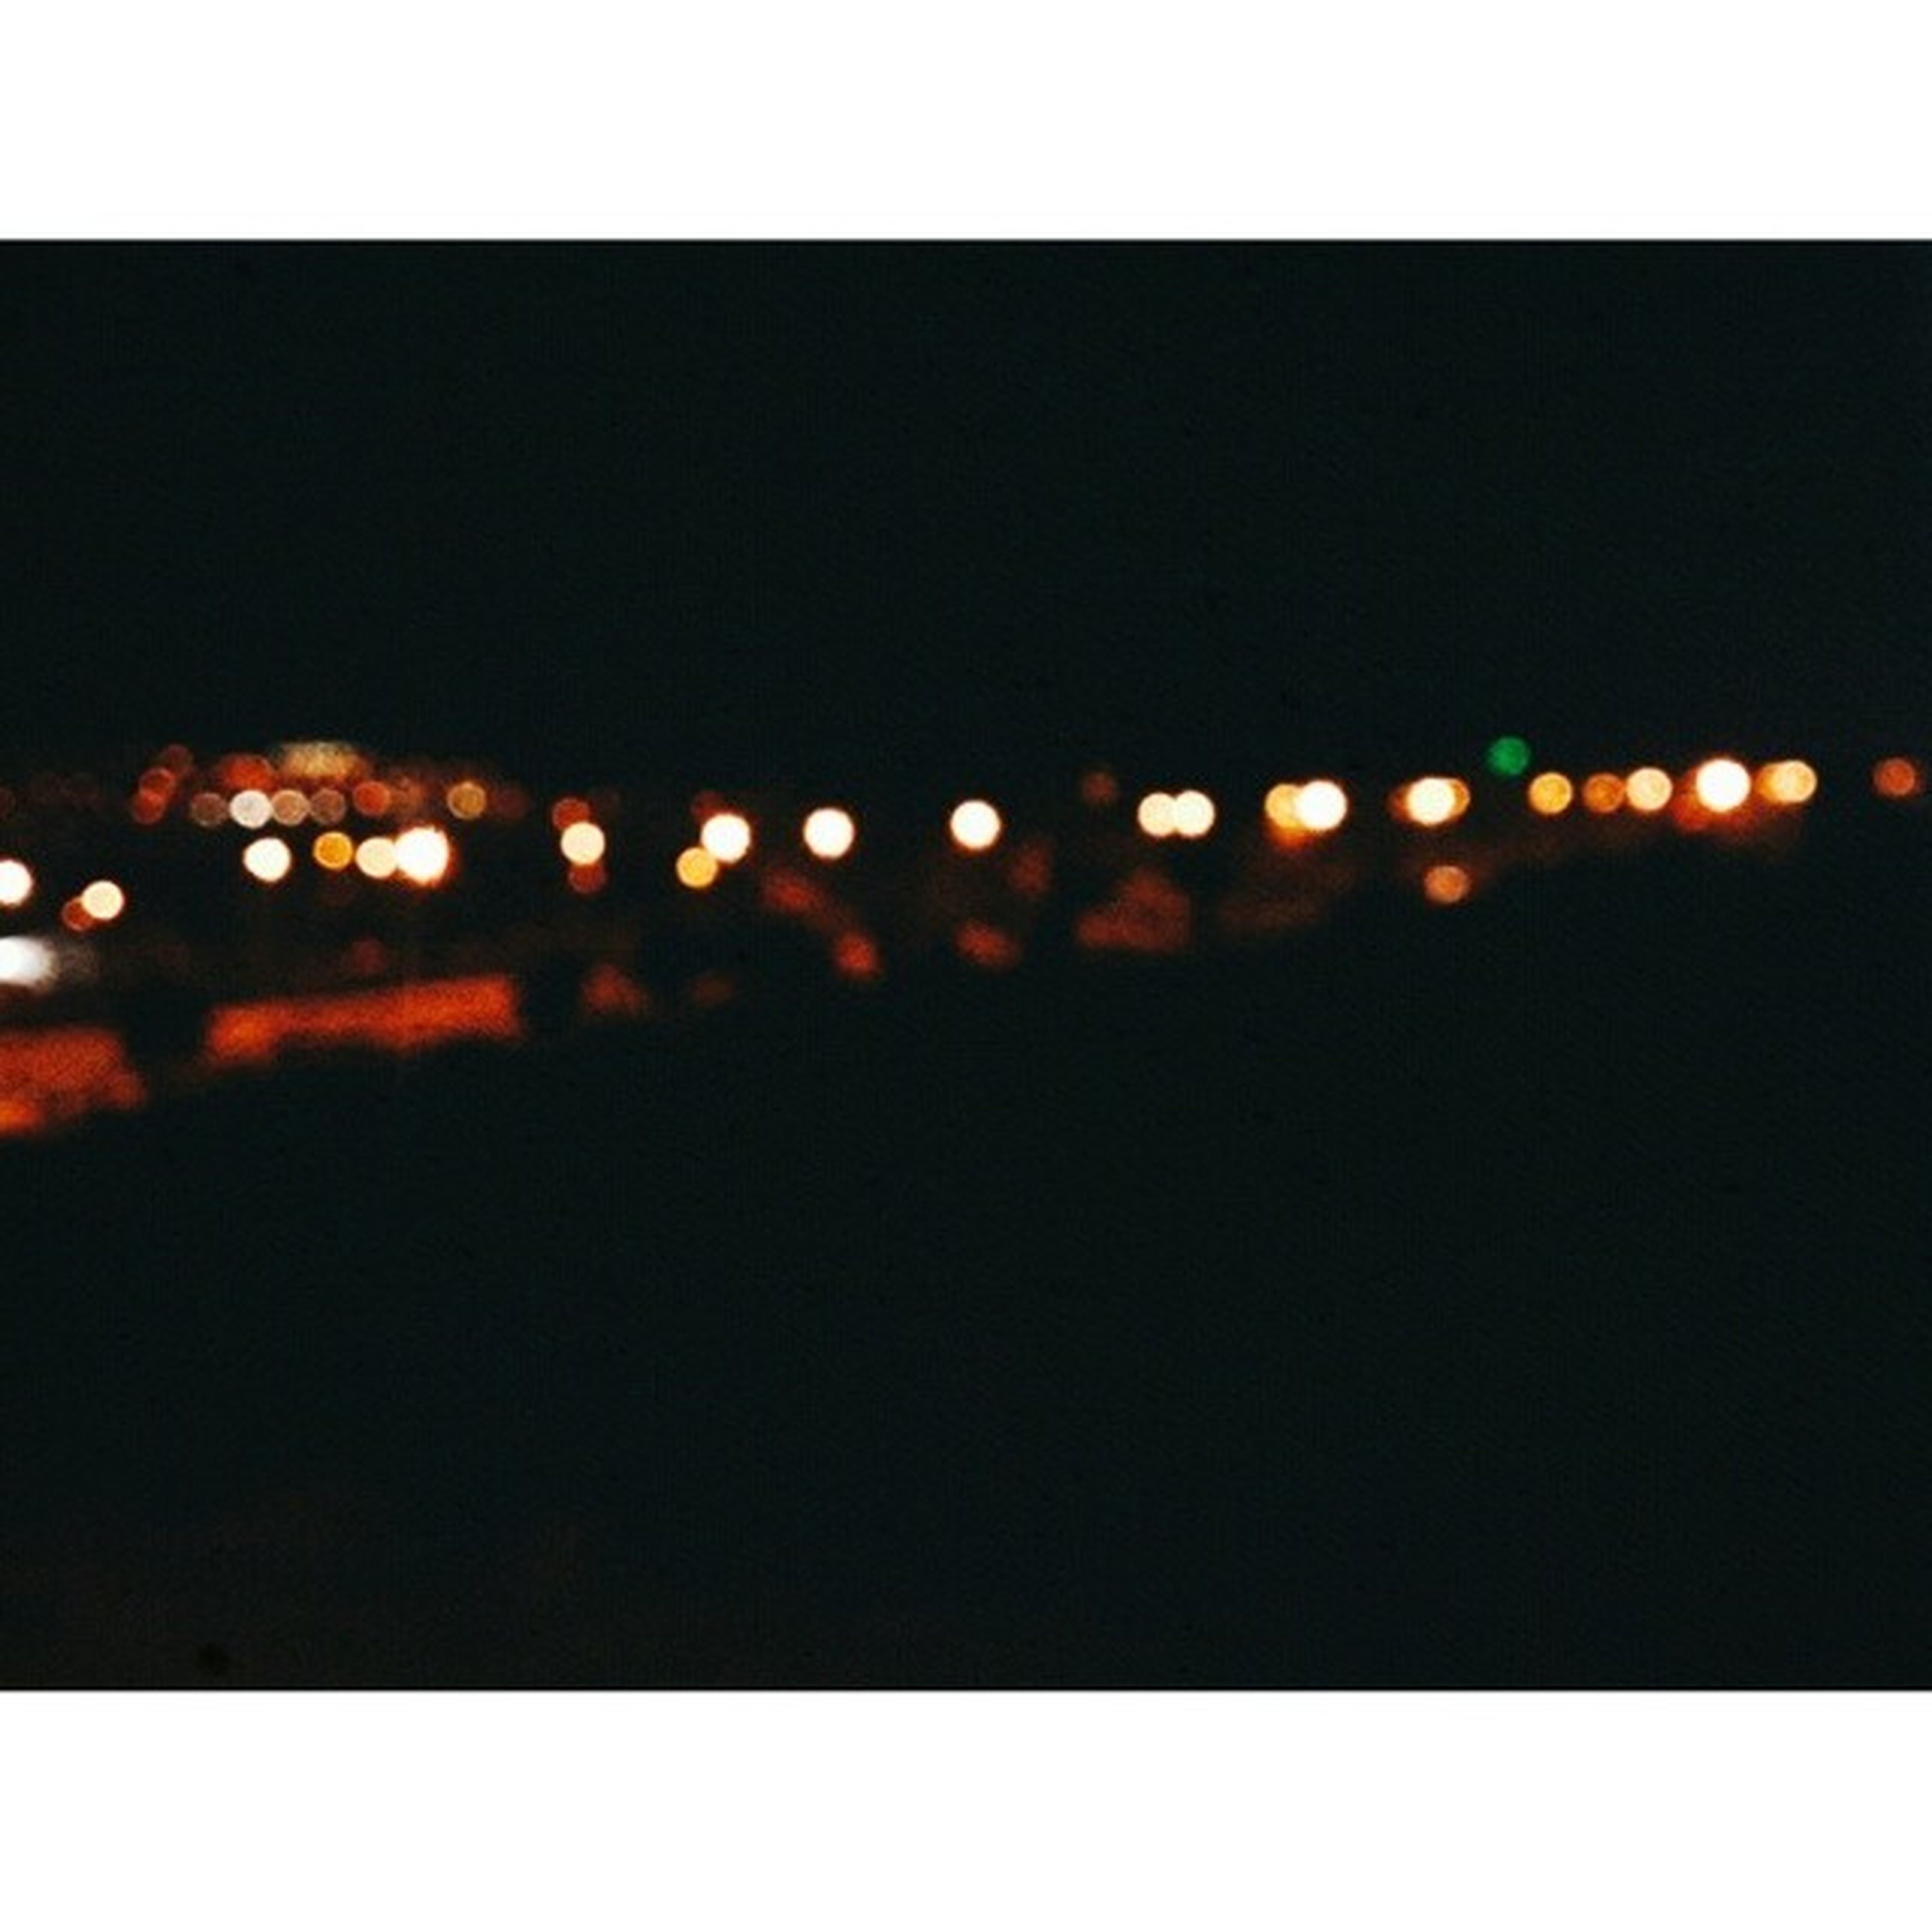 illuminated, transfer print, night, auto post production filter, copy space, dark, light - natural phenomenon, defocused, lighting equipment, glowing, no people, light, outdoors, clear sky, pattern, reflection, water, orange color, nature, yellow